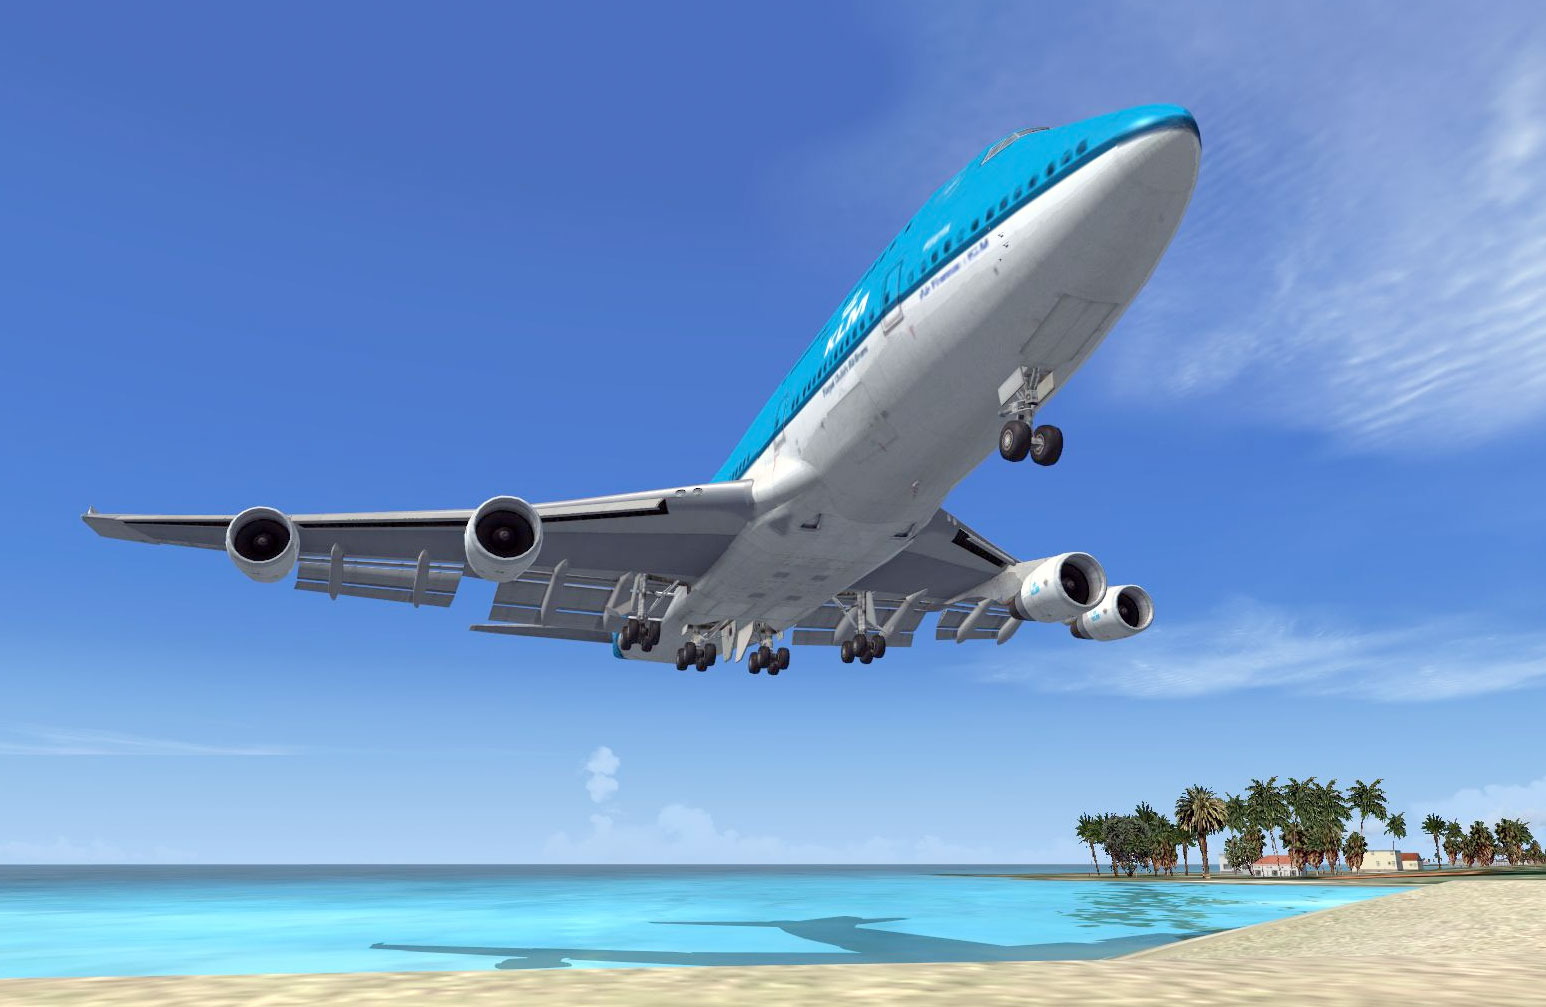 Free Add Ons For Fsx Msfs 2020 P3d X Plane Flight Simulator Downloads